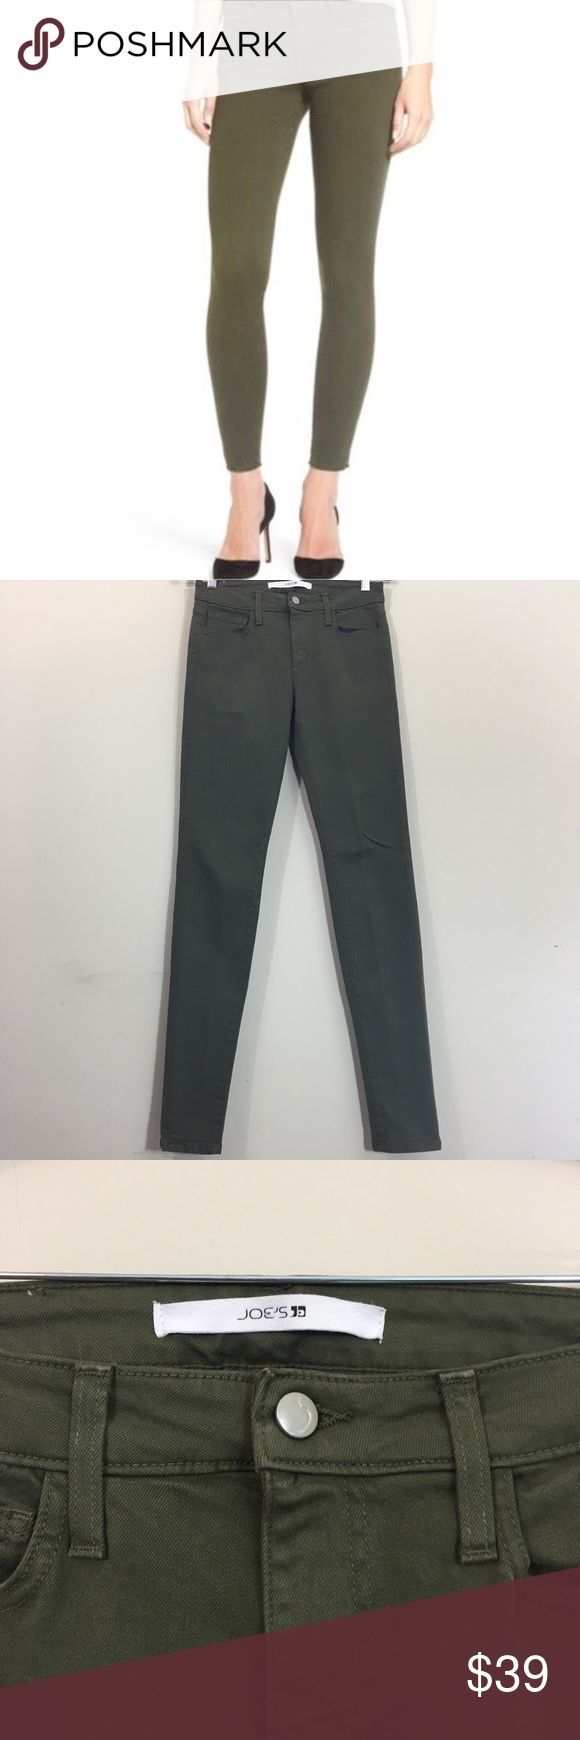 Joe's Jeans The Skinny Fit Inseam: 33 inches Leg Opening: 5 inches Lay Flat Waist: 14.5  inches Rise:  9 inches Fabric: 93% cotton, 6% PES, 1% lycra Desc: Like new condition, excellent stretch  ✂️Bundle & Save: 10% Off 2 or More Items ❌ No Trades 📬 Shipping within 48 hours Joe's Jeans Jeans Skinny